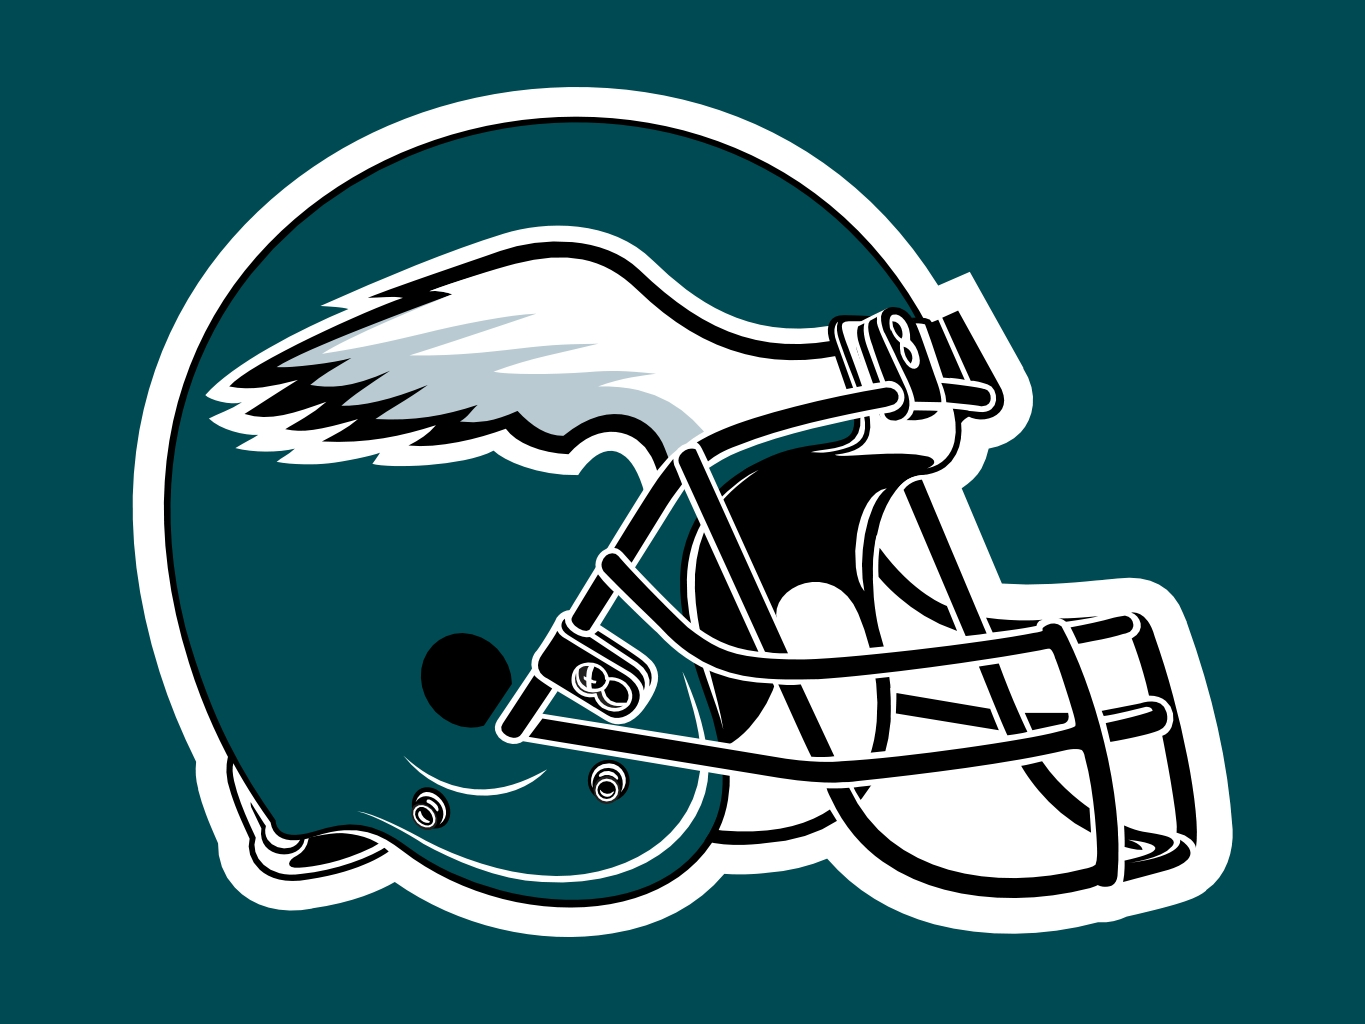 Philadelphia Eagles Helmet Logo drawing free image